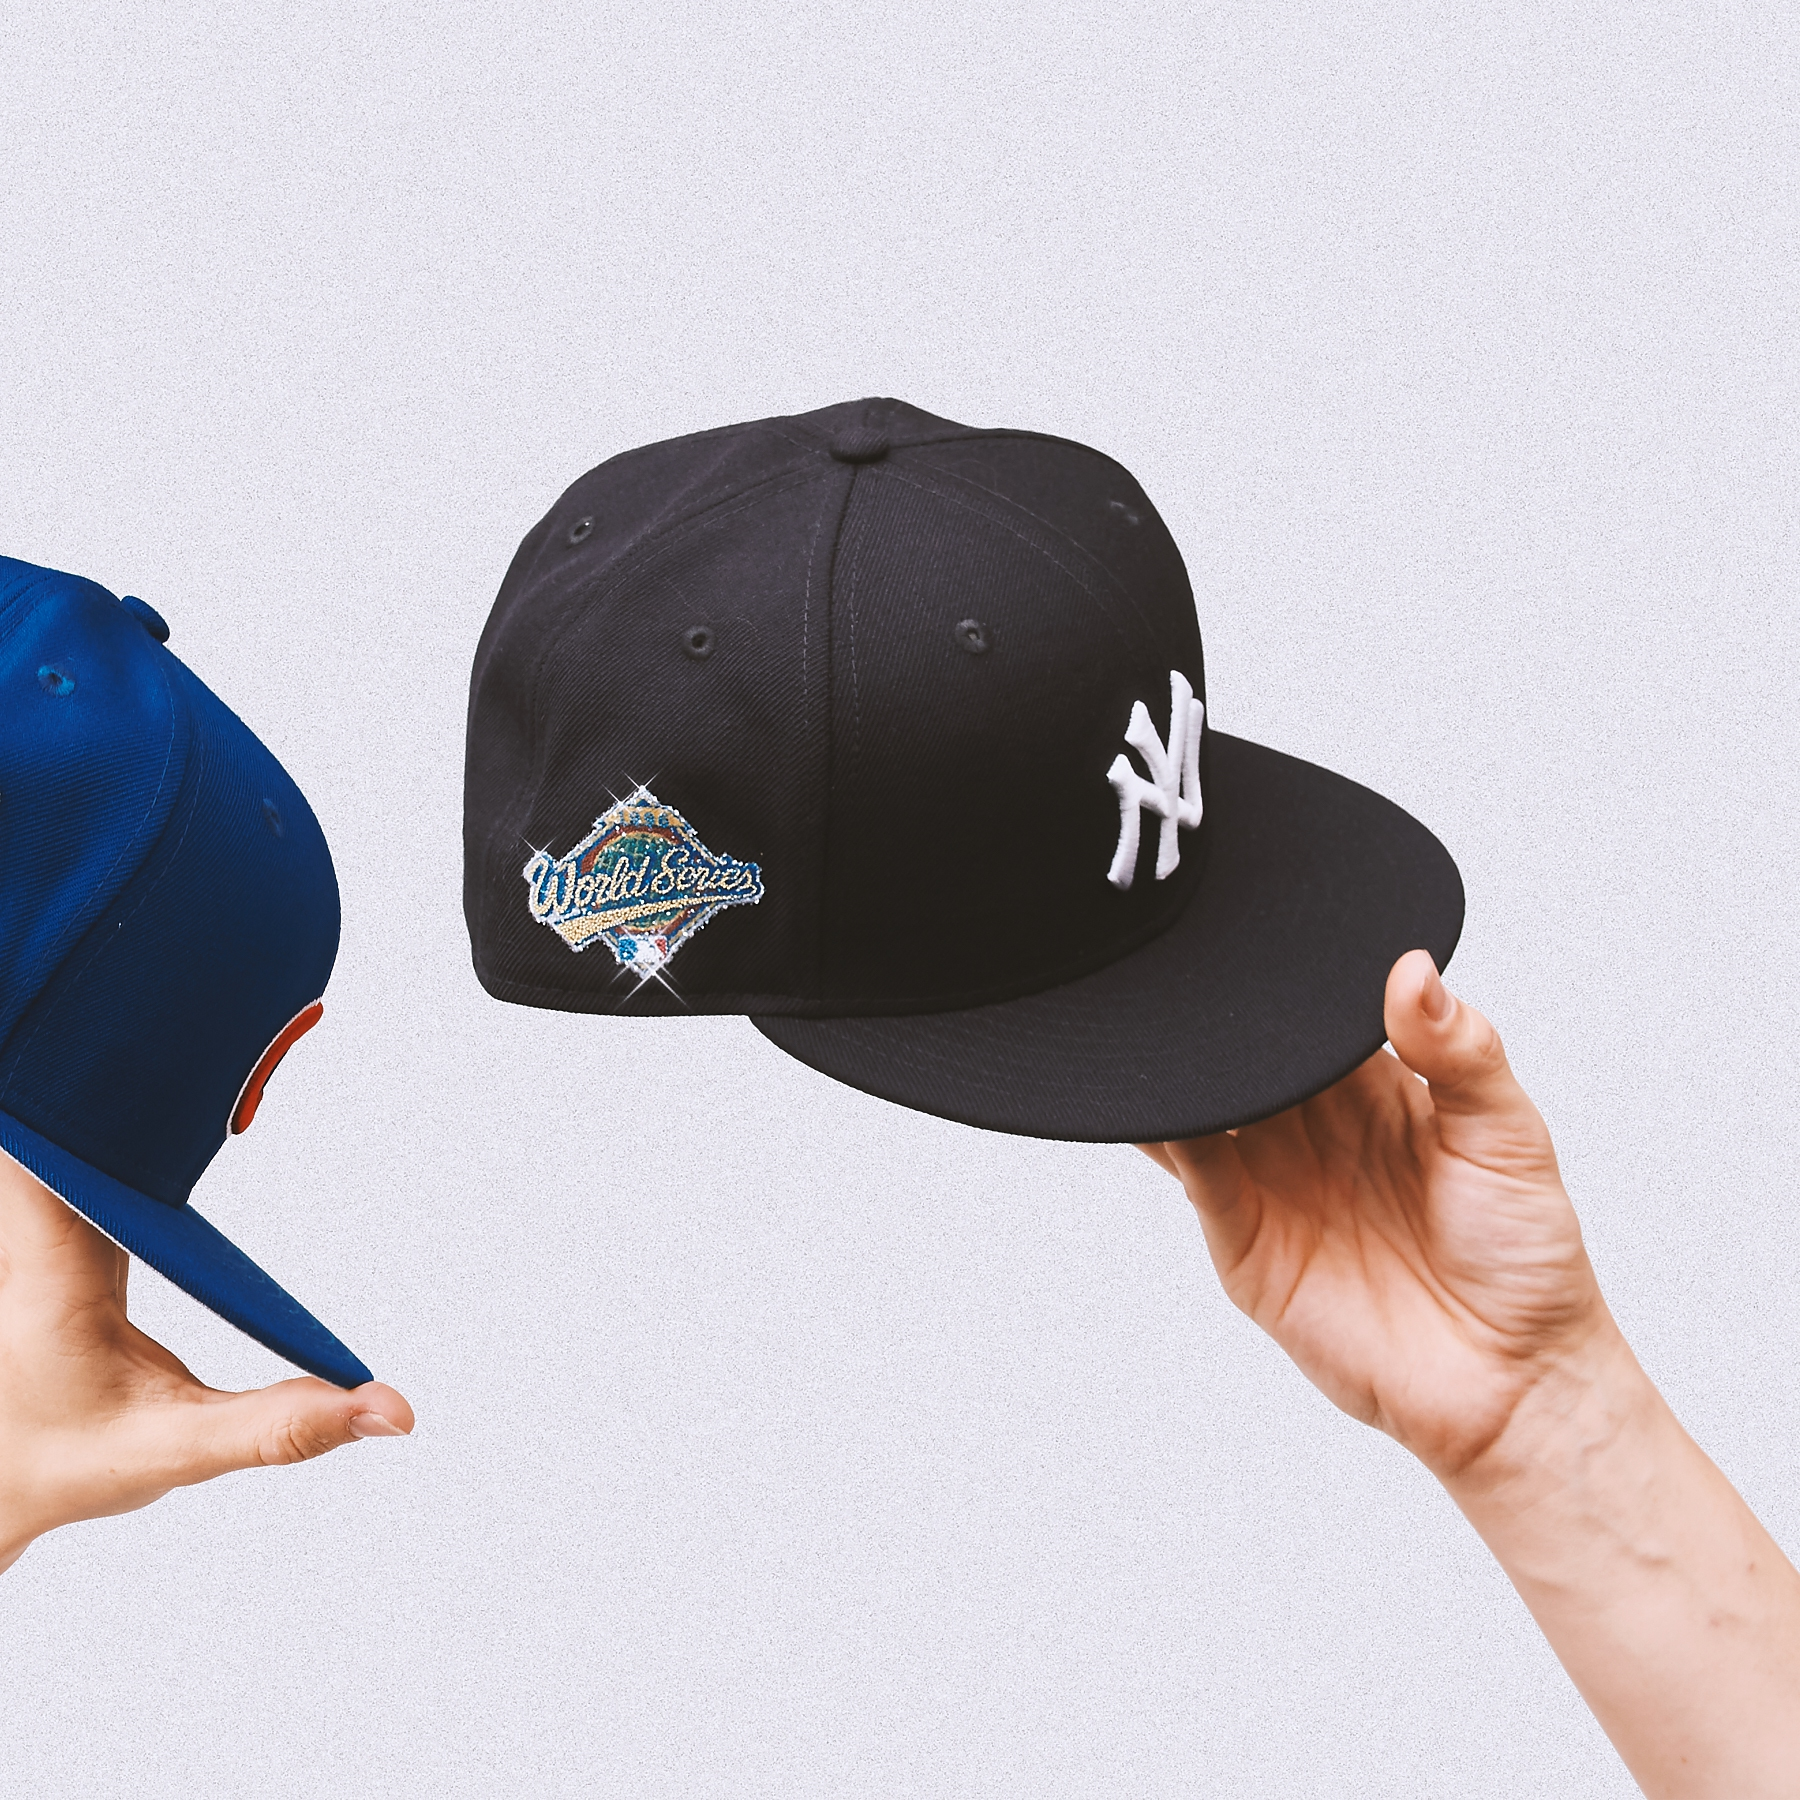 NEW ERA x Swarovski World Series Logo Limited Edition 59FIFTY Cap